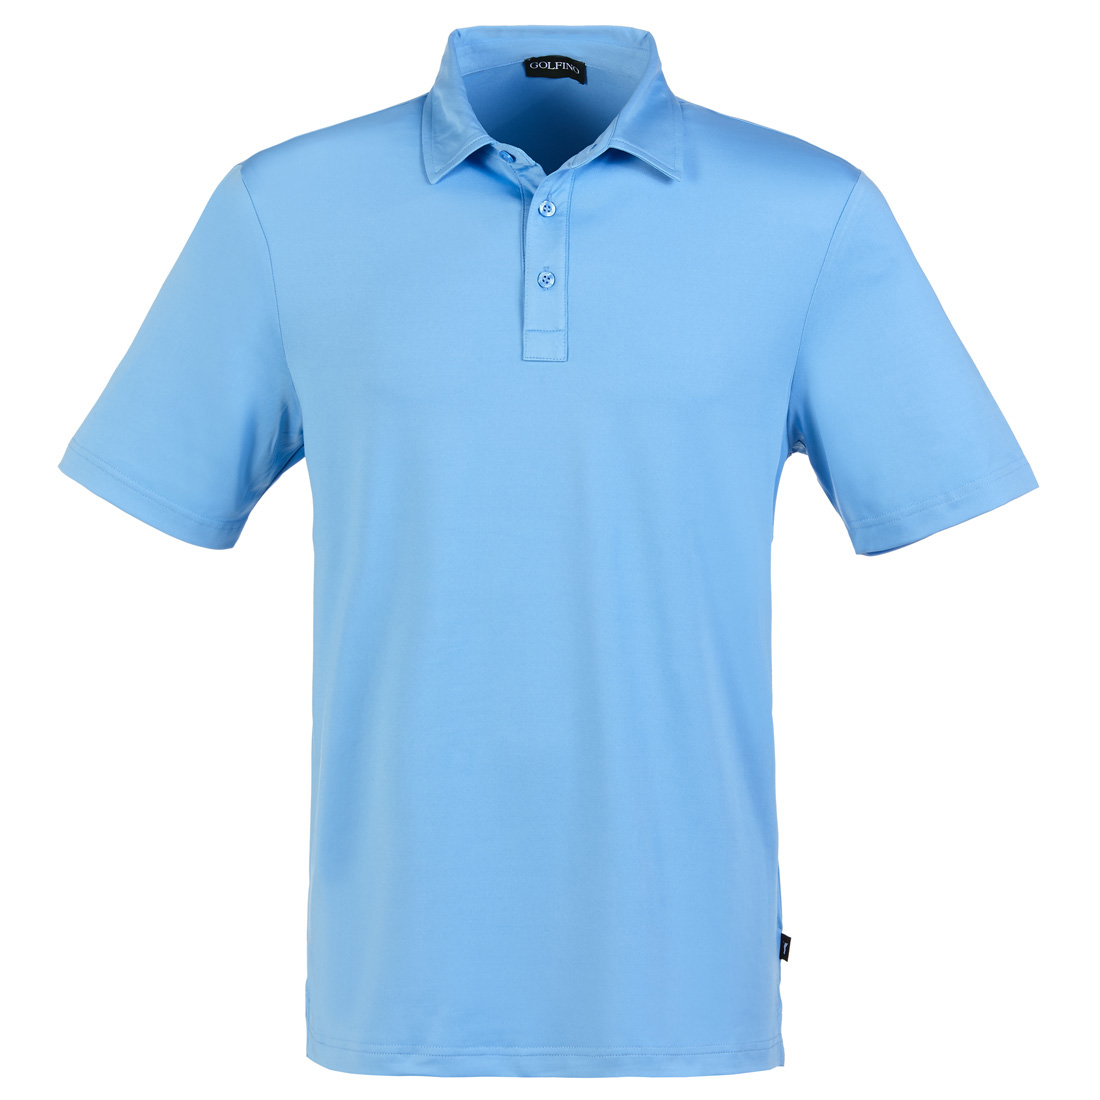 Weiches Golf Shirt